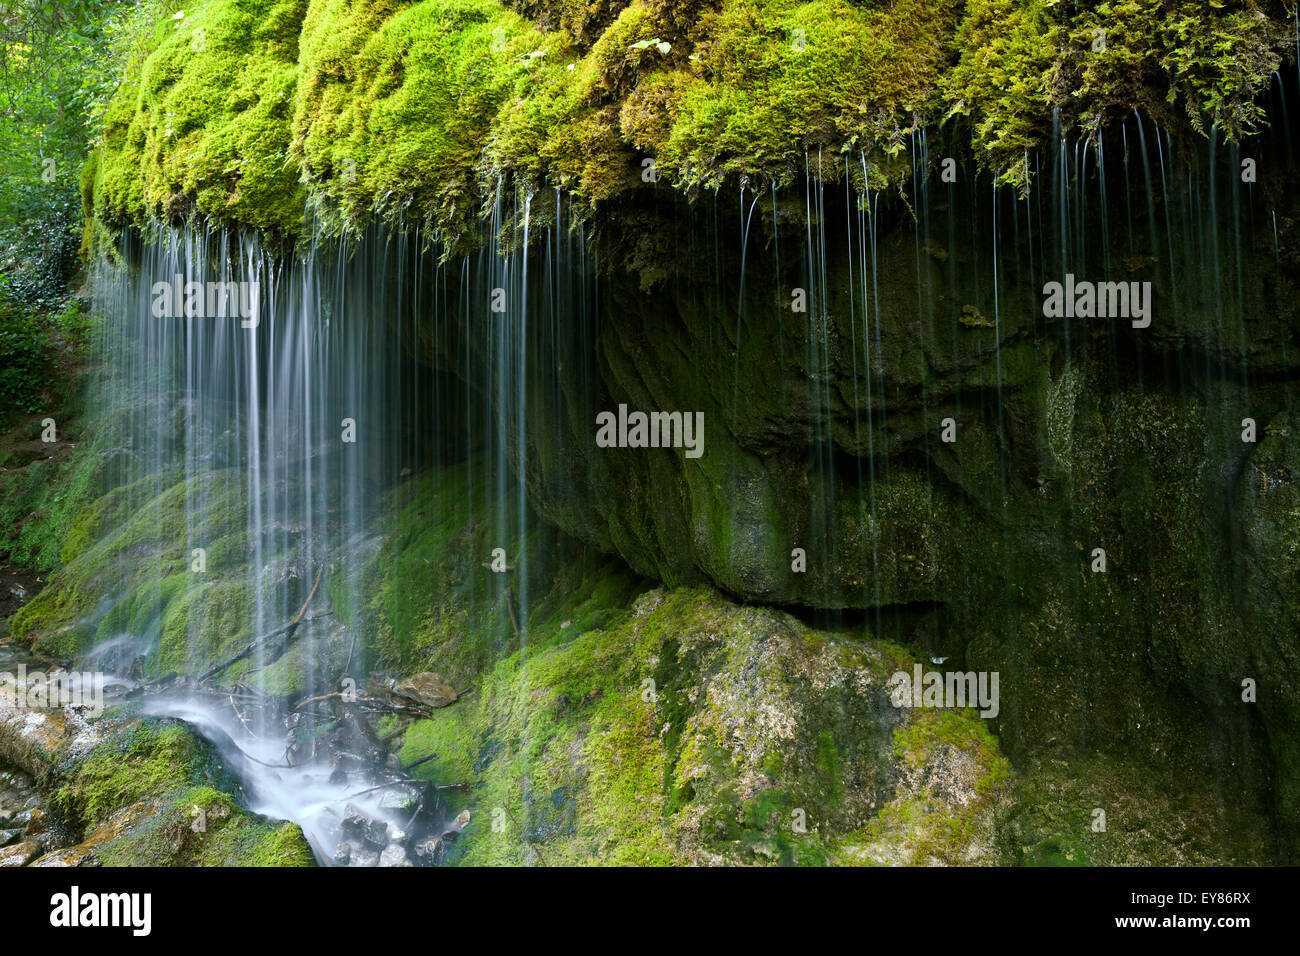 Mossy waterfall, Wutachschlucht gorge, Black Forest, Baden-Württemberg, Germany - Stock Image